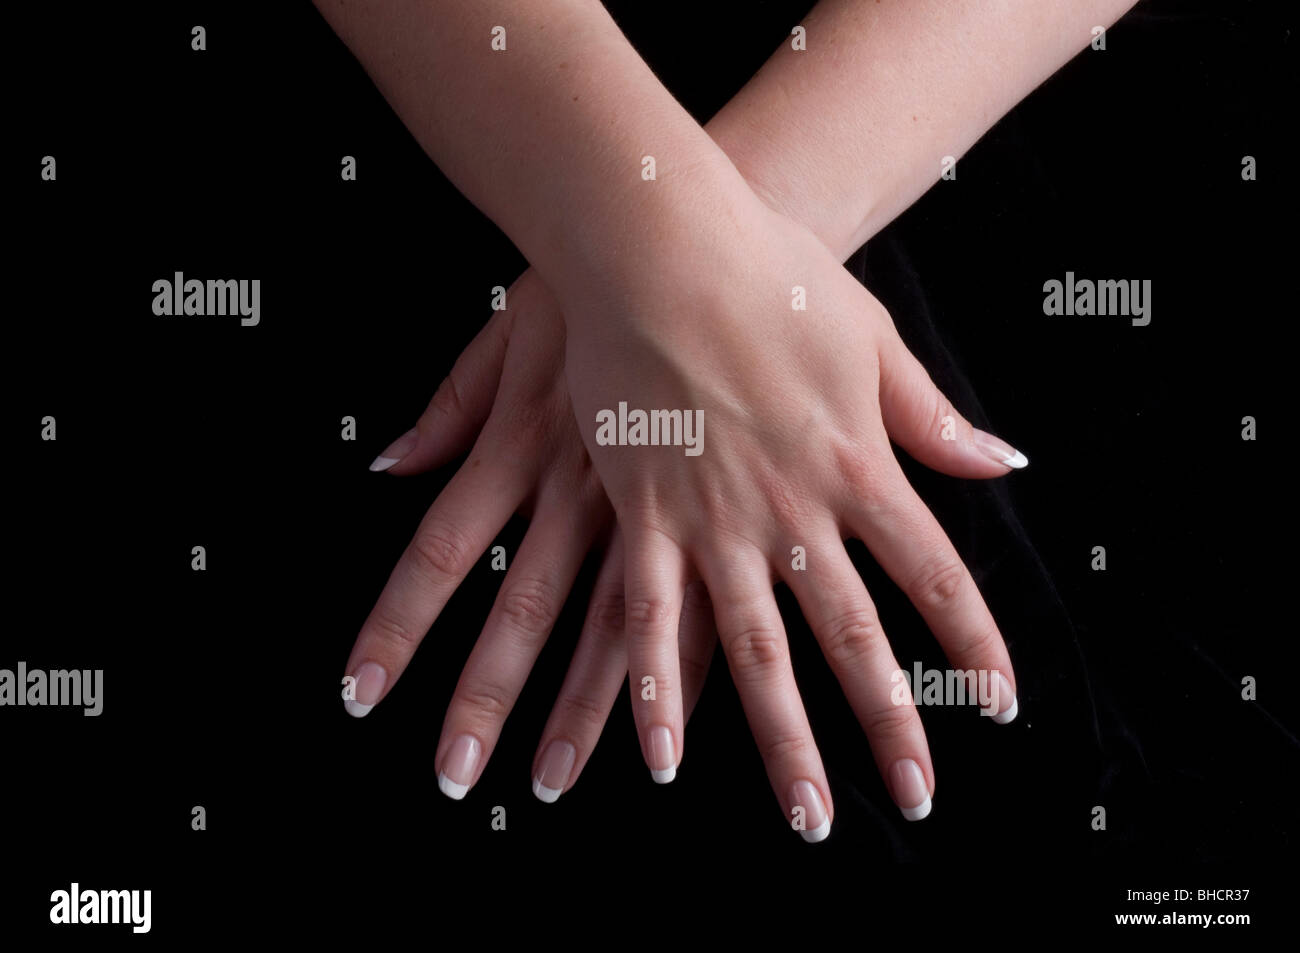 crossed hands with splayed fingers - Stock Image